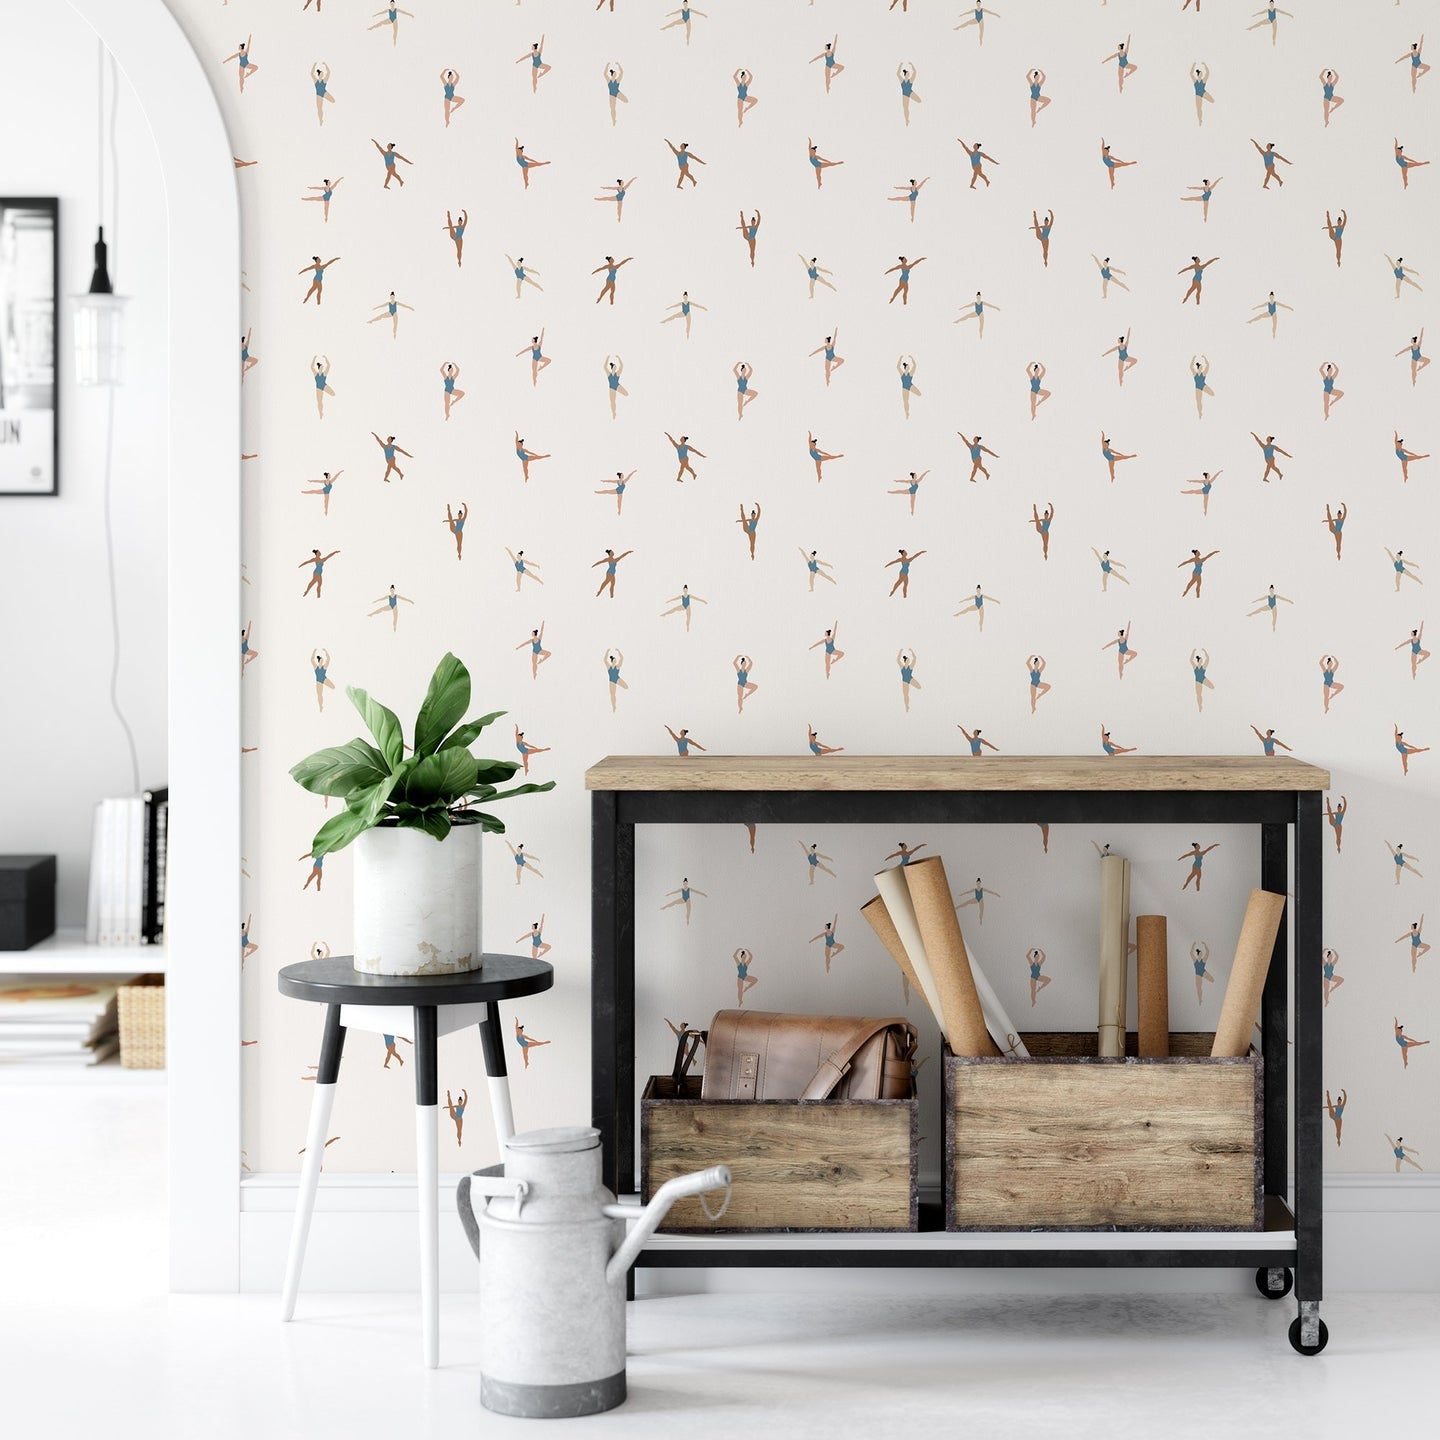 Light Ballerina Peel and Stick Wallpaper - The Wallberry